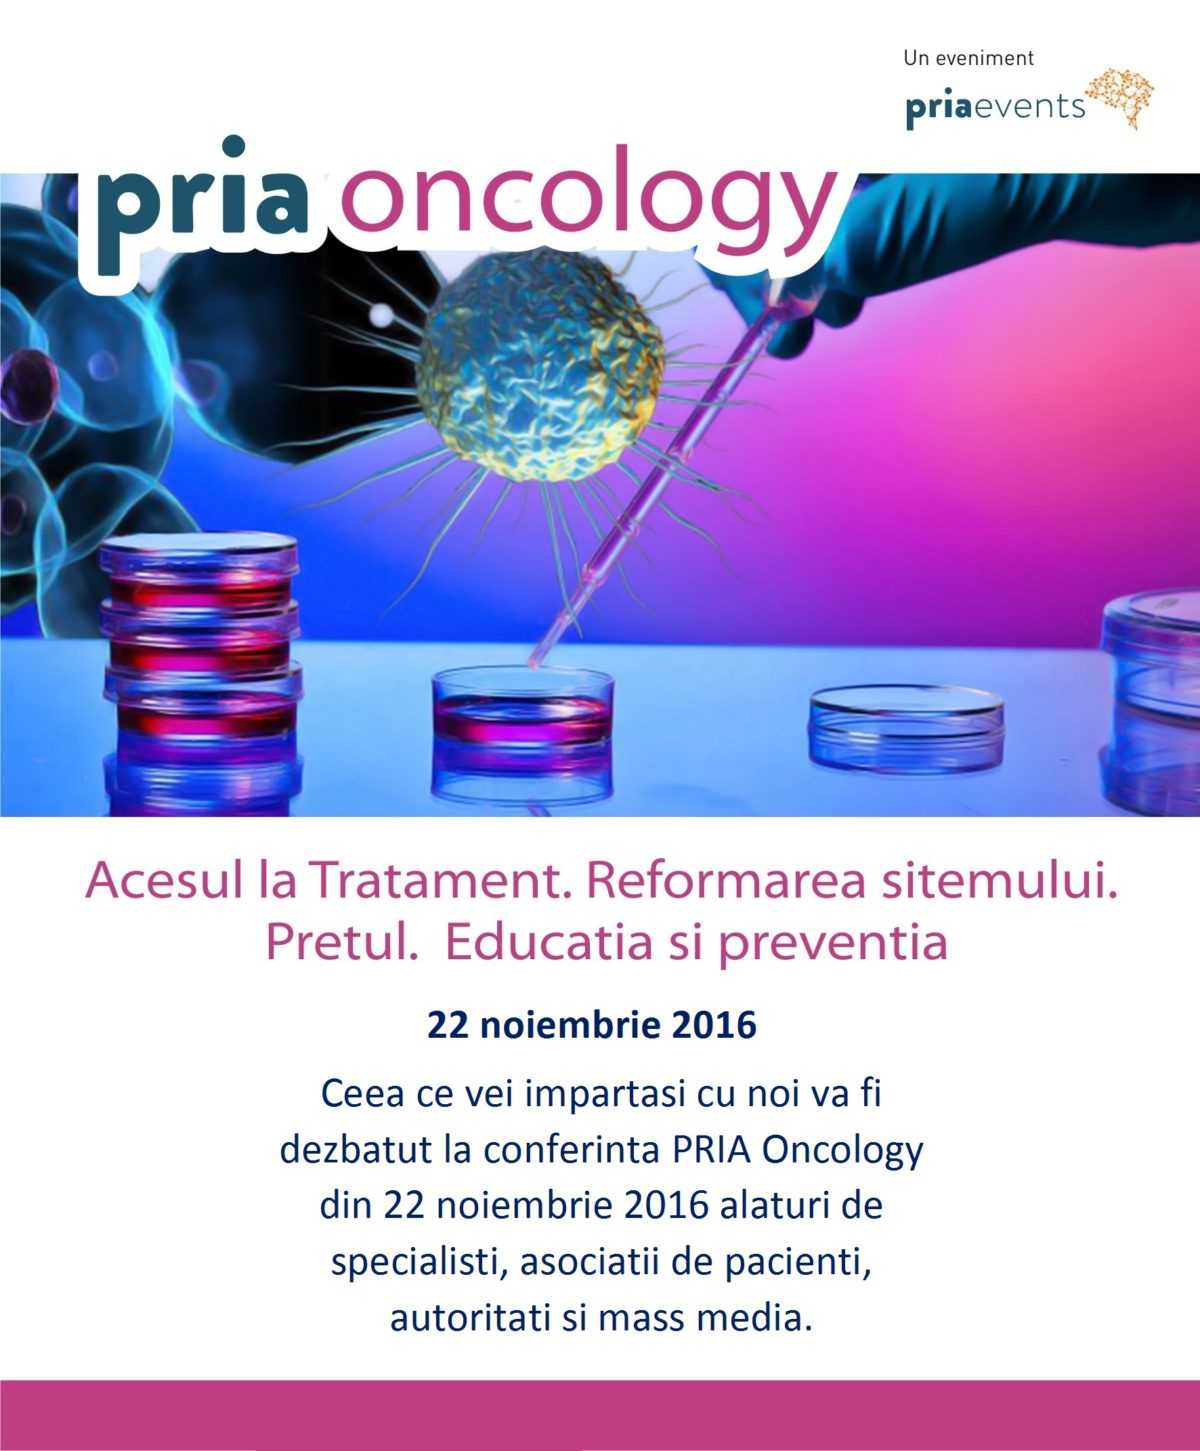 pria-oncology-8-noiembrie-2016